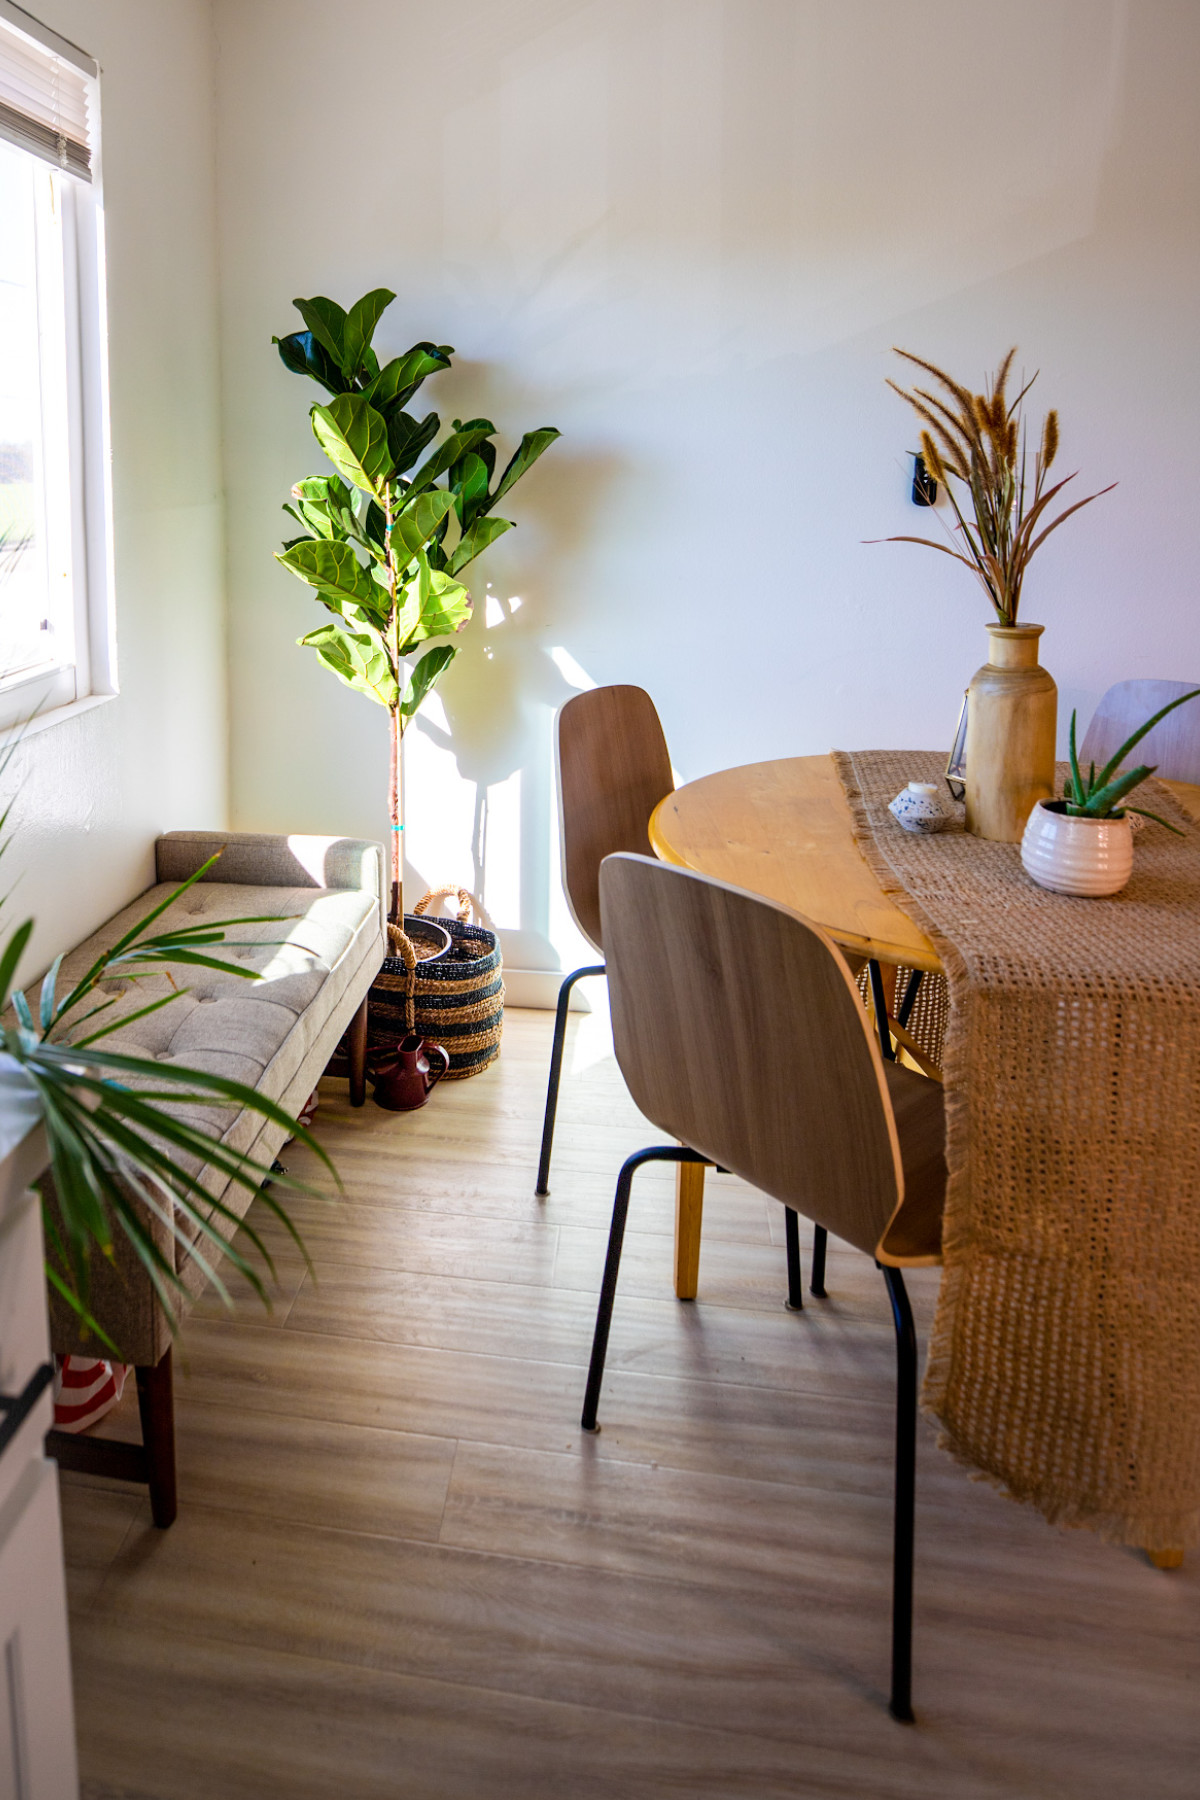 A neutral paletteis balanced out by lively houseplants inthe dining room.Facebook MarketplaceTable|TargetChairs|TargetBasket |Target Runner |World Market Vases |Goodwill Bench. Photographed by Cher Martinez for Lonny.